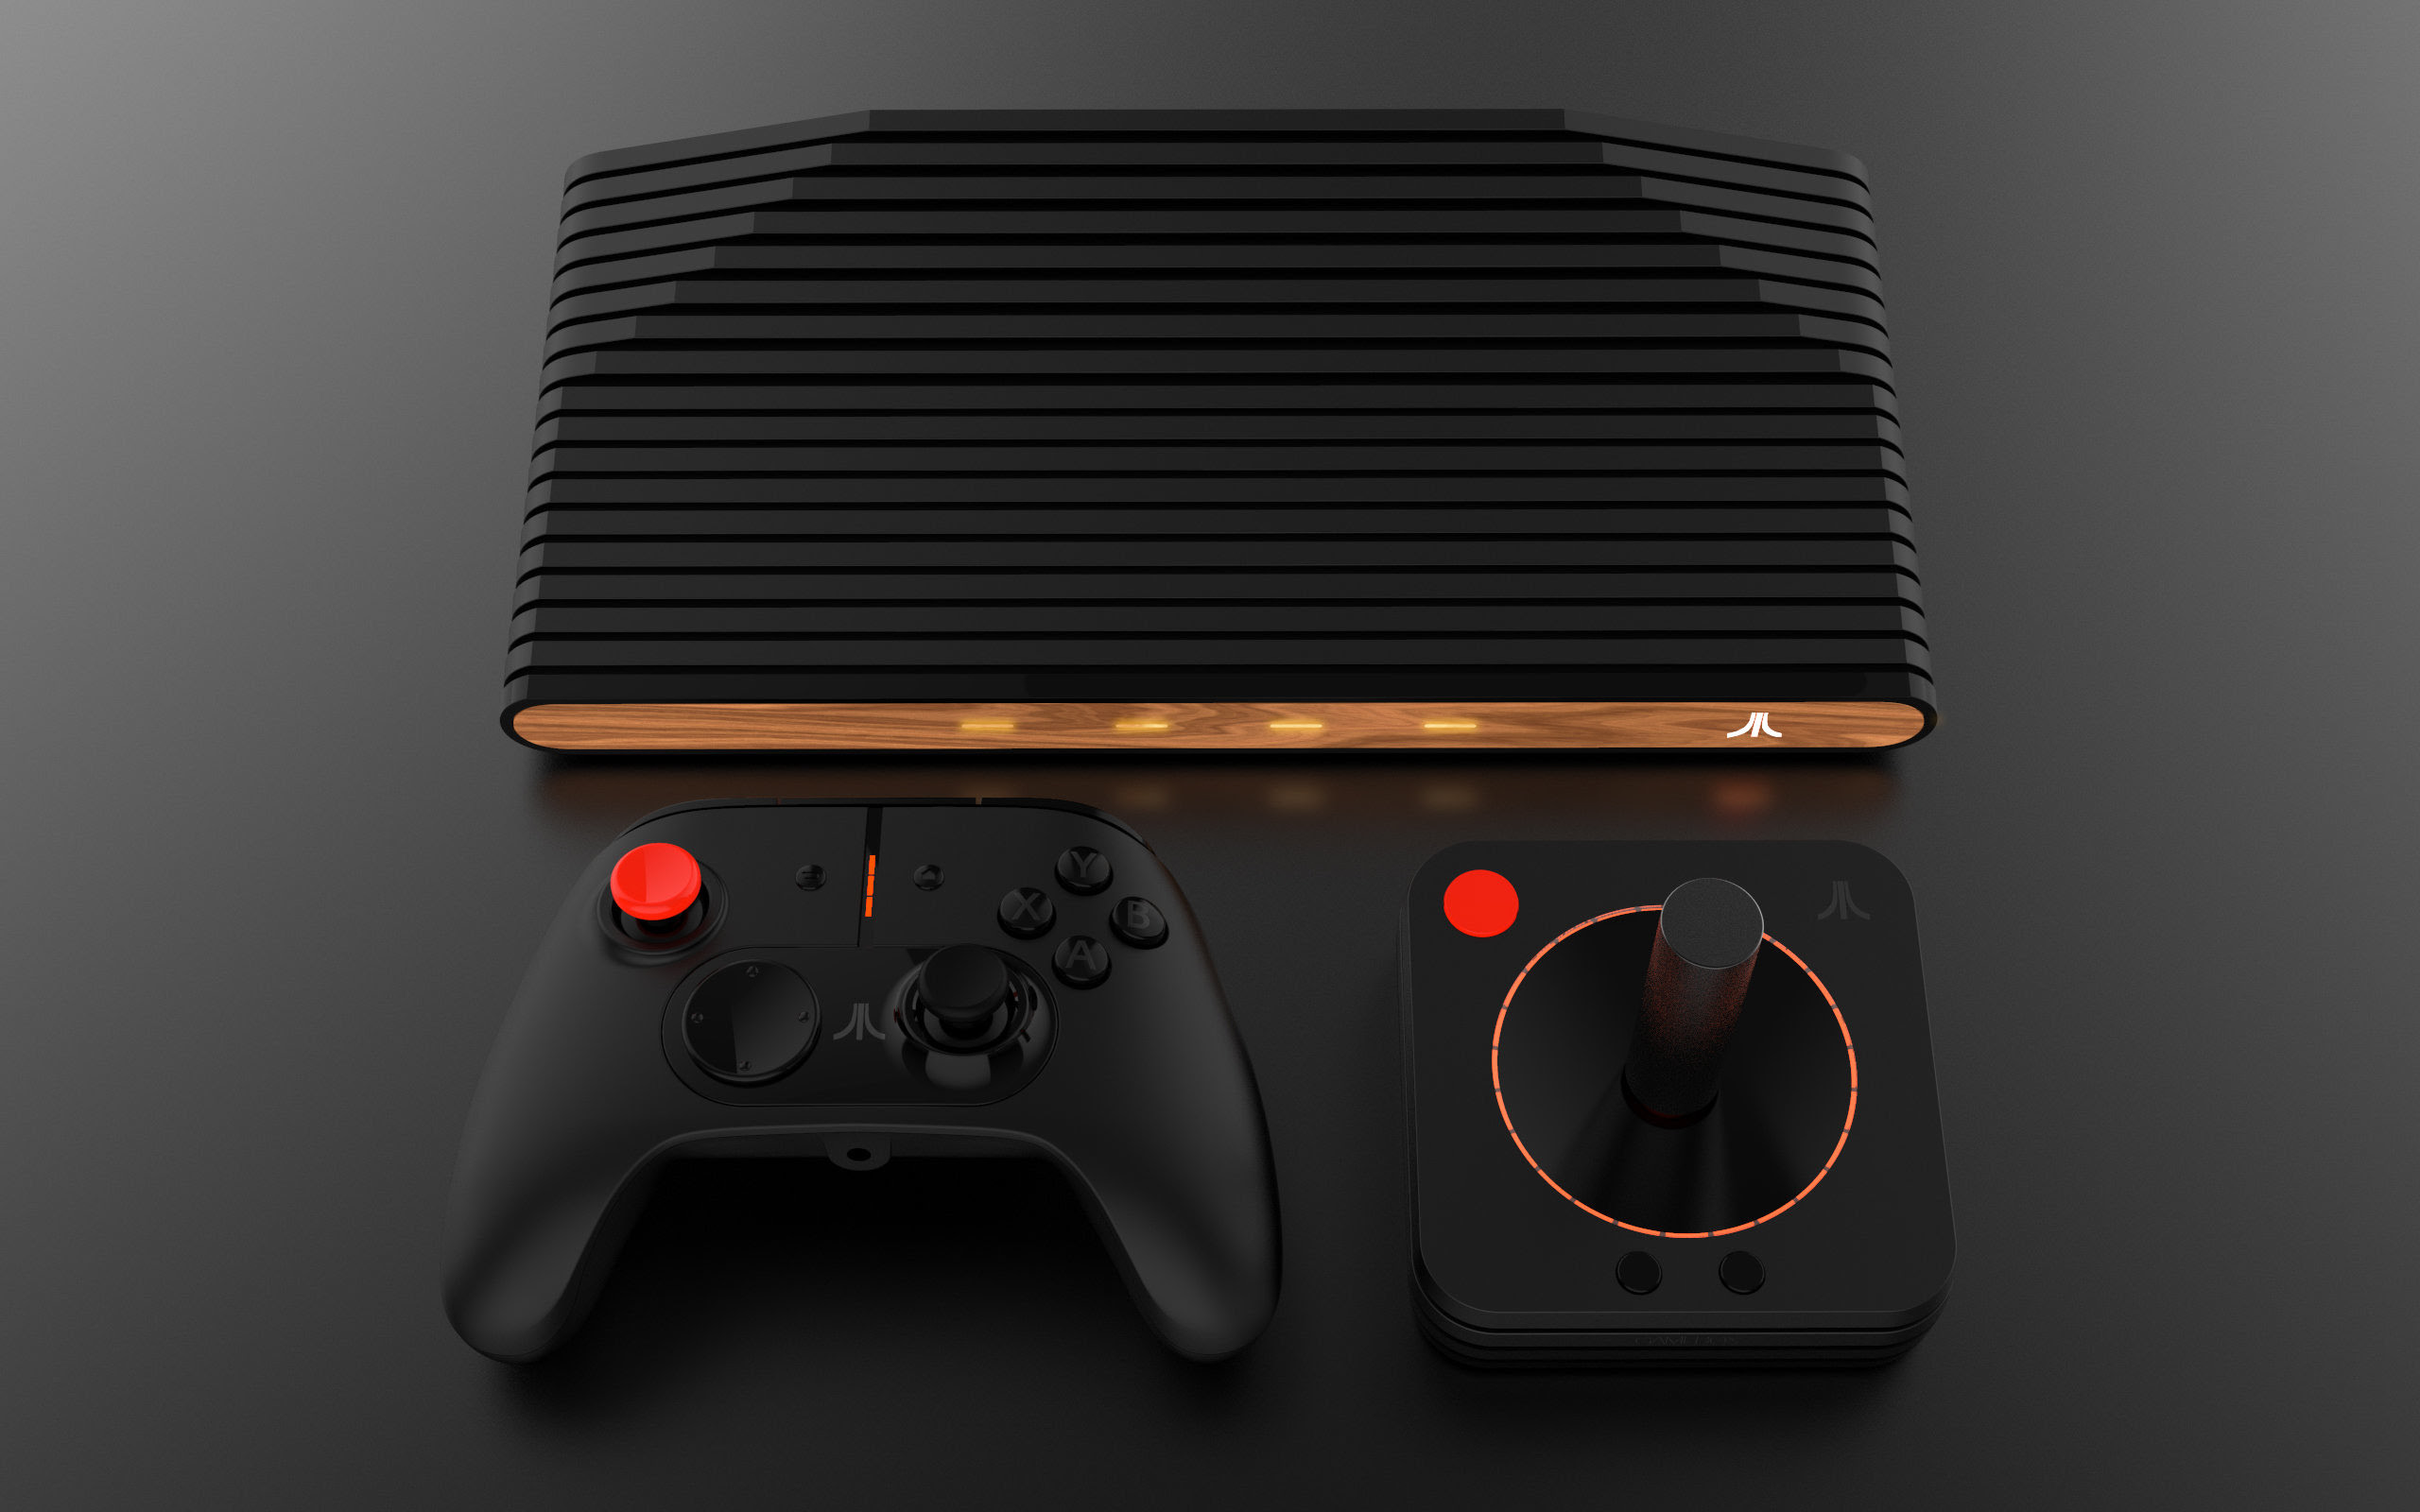 Atari VCS pre-sale starts this May ready for shipping in 2019